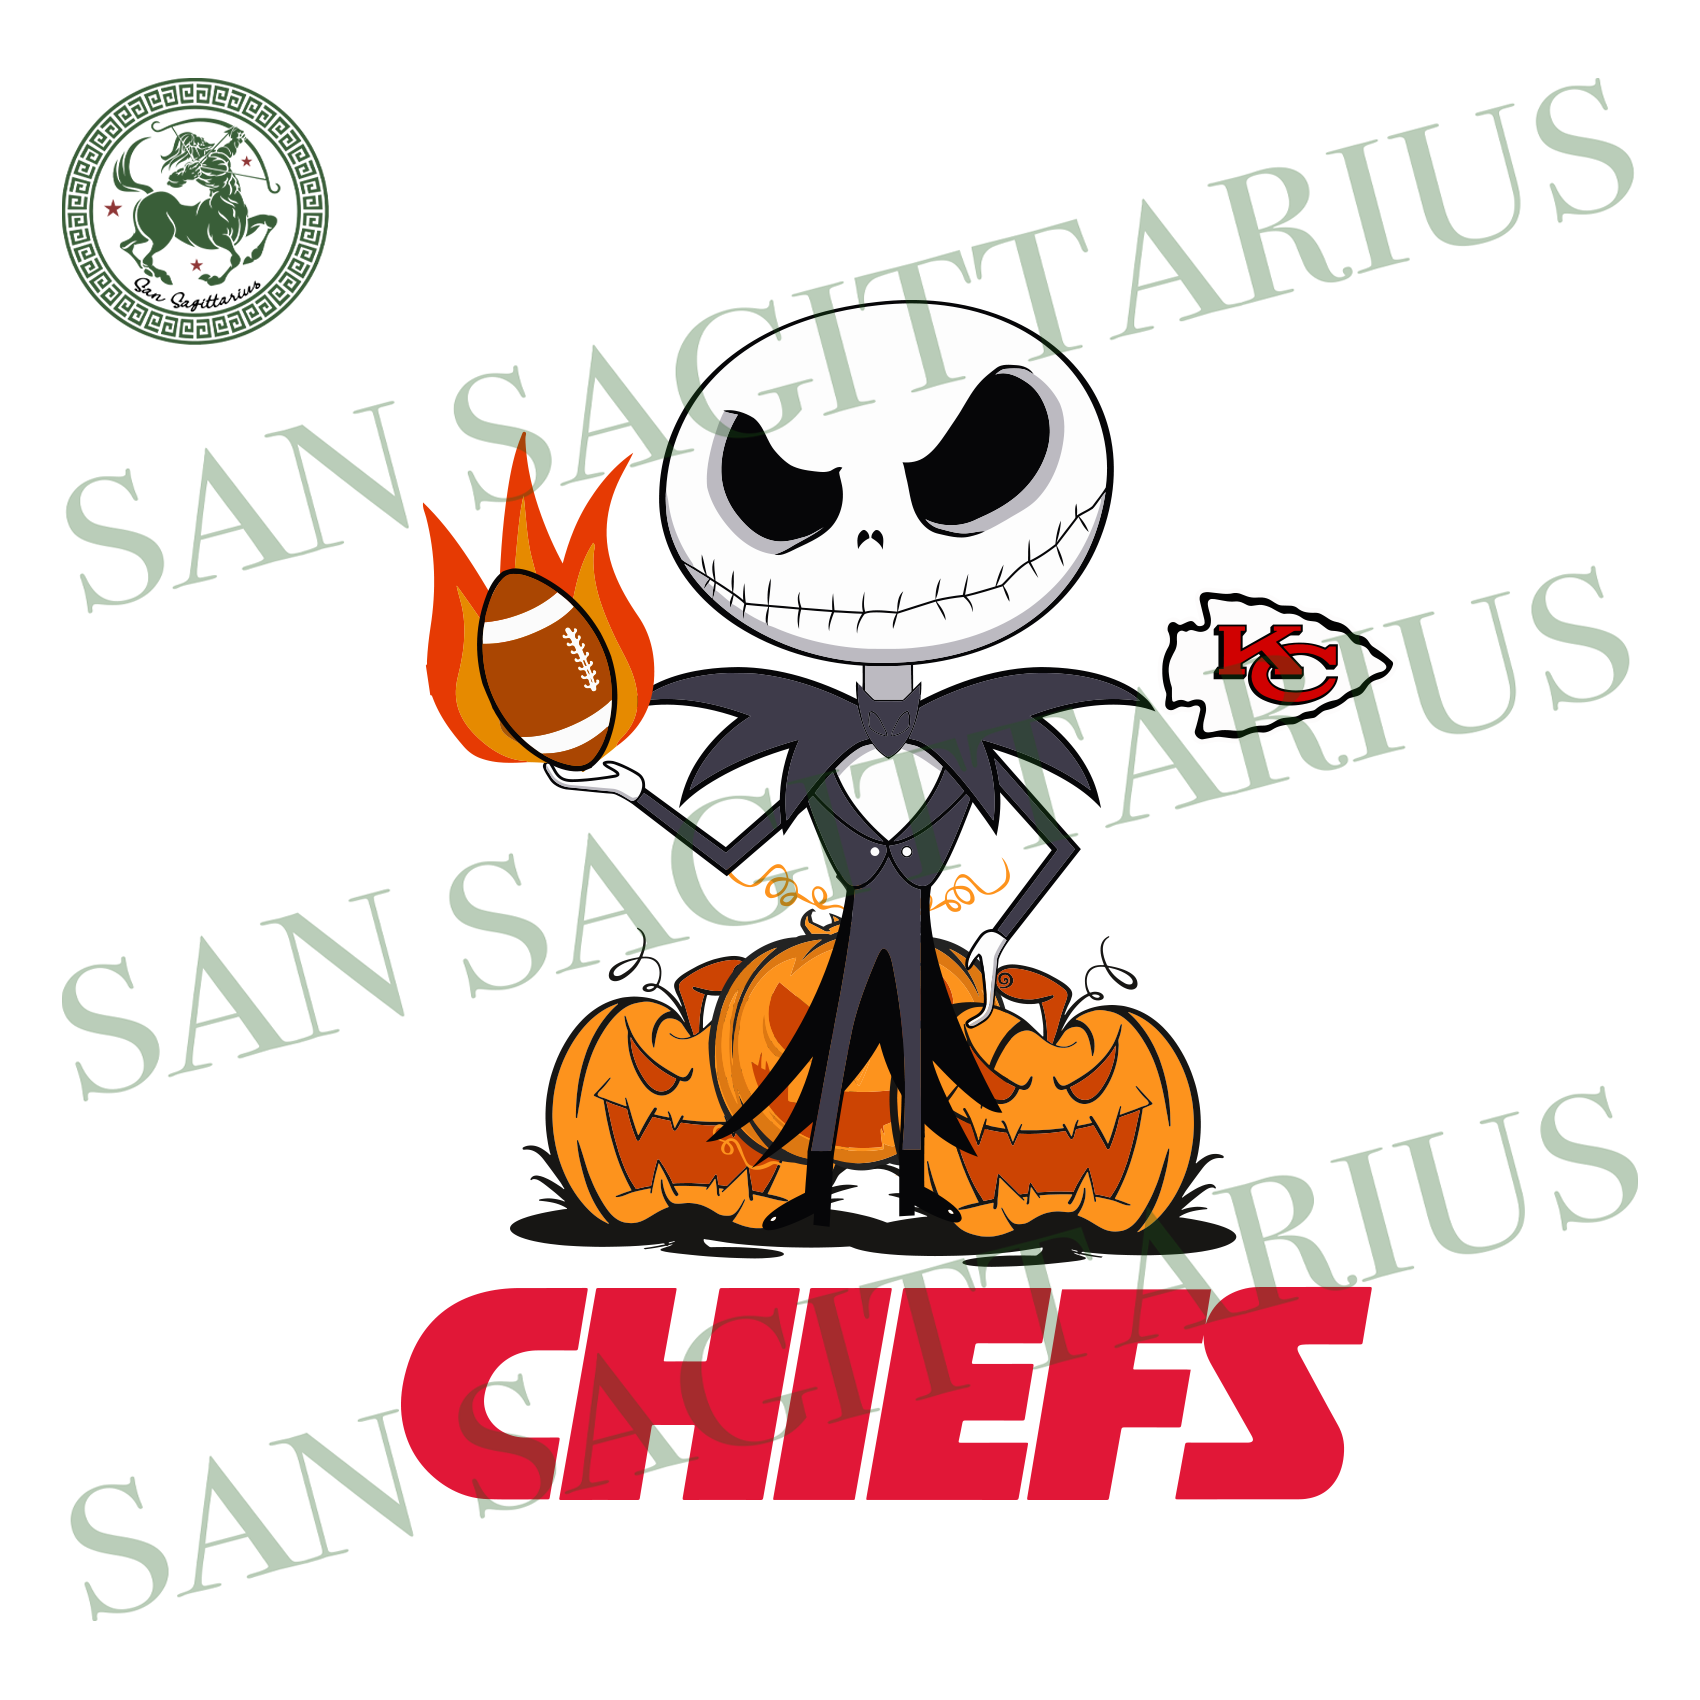 Chiefs NFL, Halloween Svg, Halloween Svg, Happy Halloween, Halloween Gift, Halloween Shirt, Halloween Icon, Halloween Vector, Chiefs Svg, Chiefs Basketball Team, Nightmare Svg, Nightmare Man,